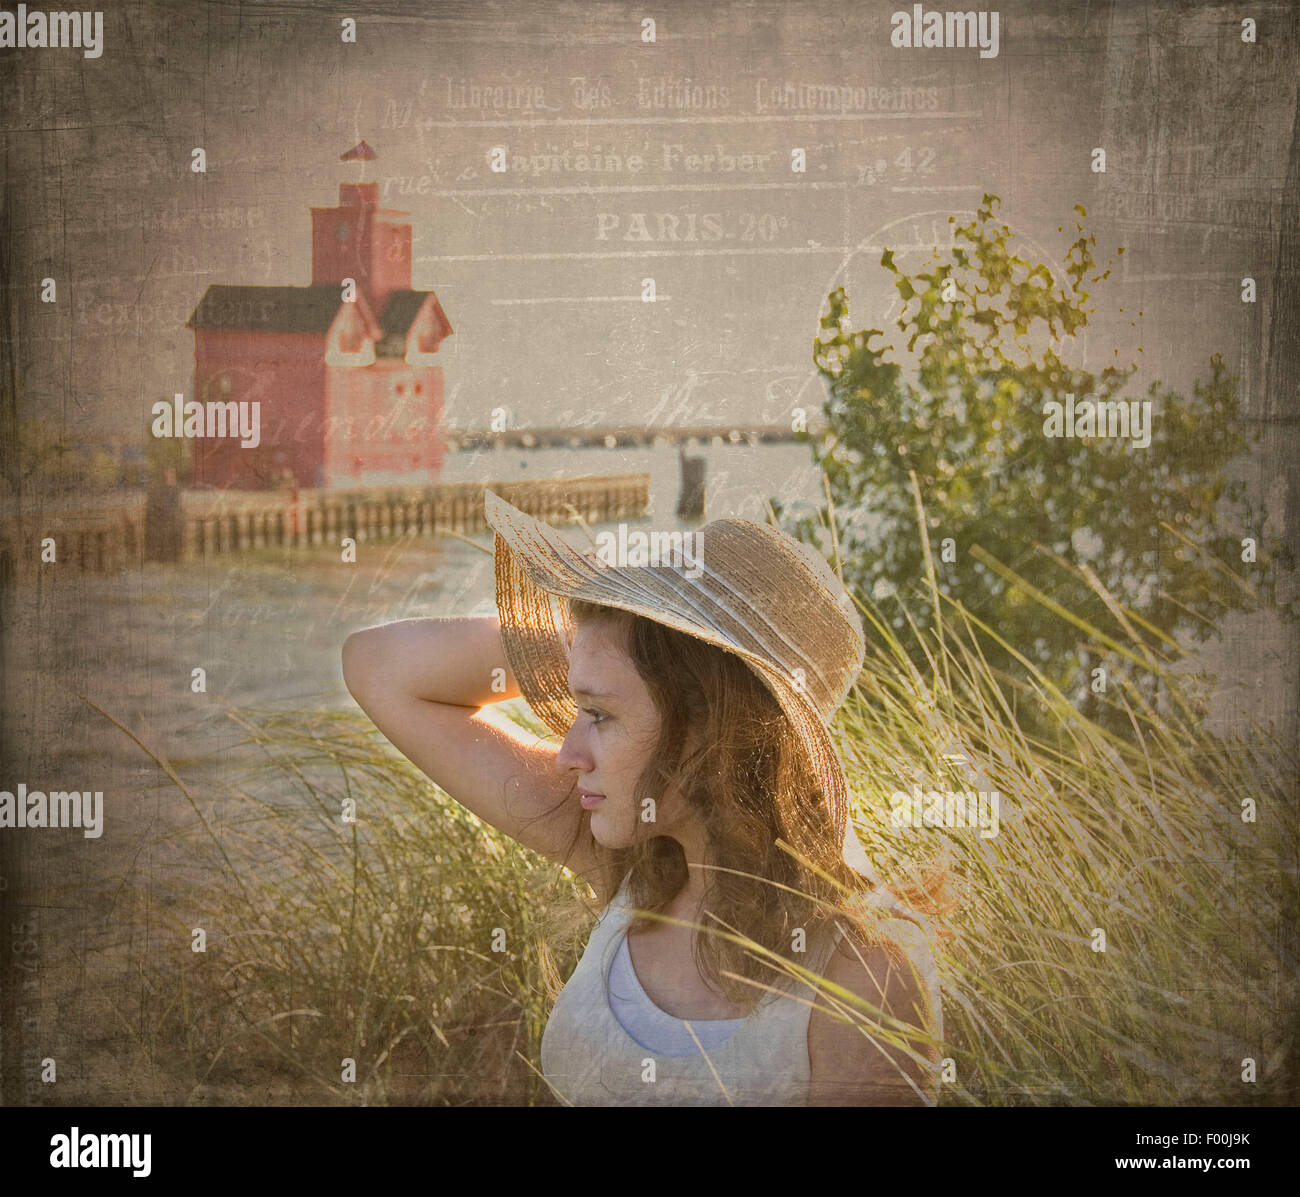 Young woman wearing a hat in beach grass with vintage texture overlay. - Stock Image